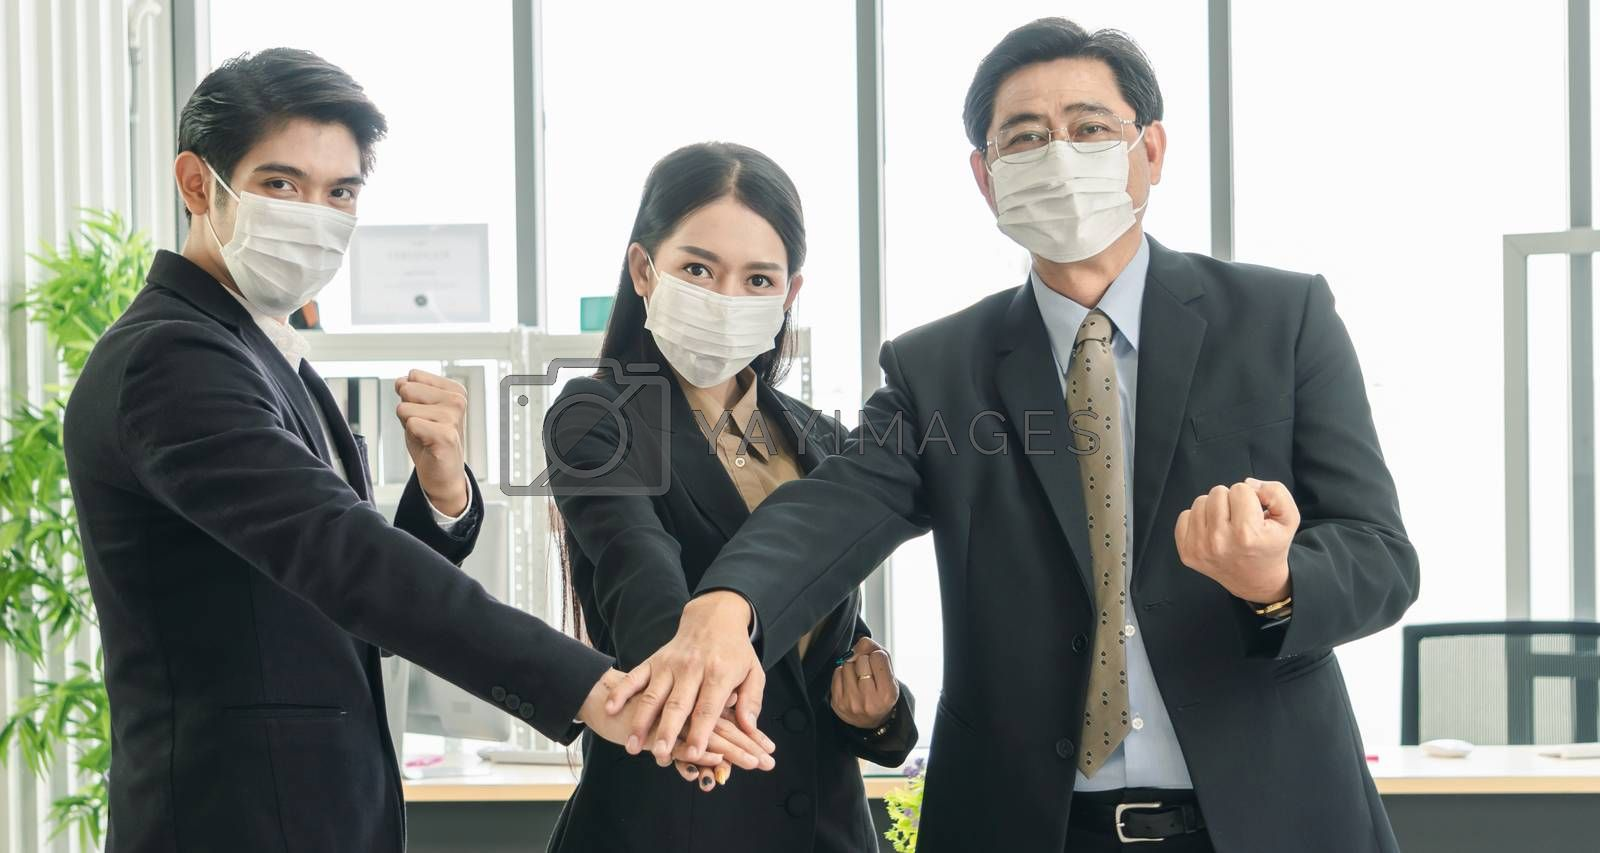 A business team wearing a working mask by nuad338